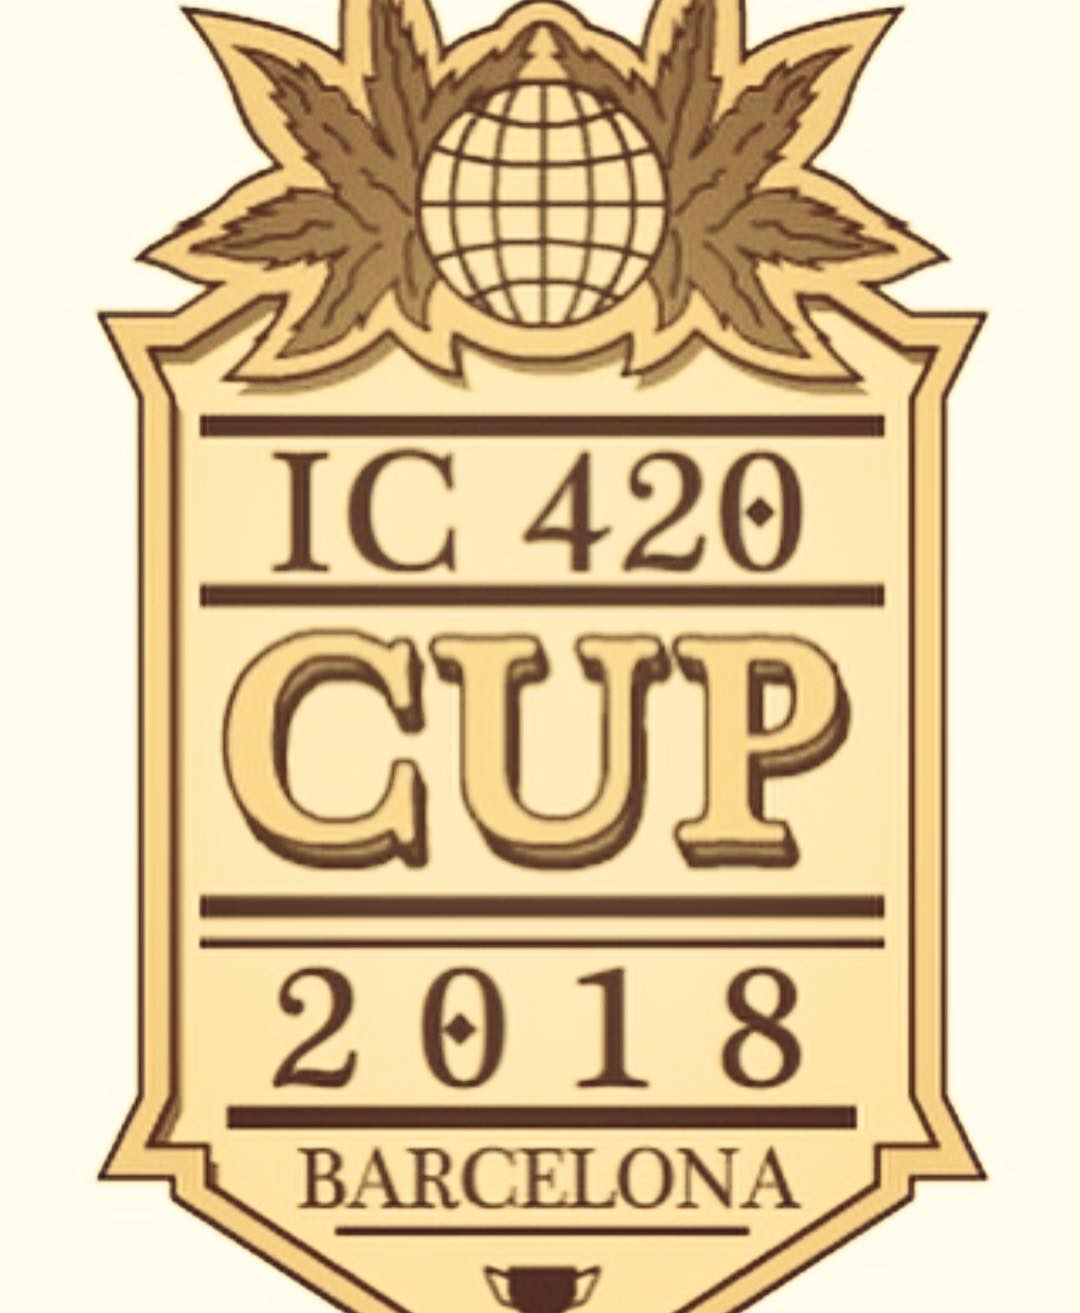 ic-420/ic420cup 2018